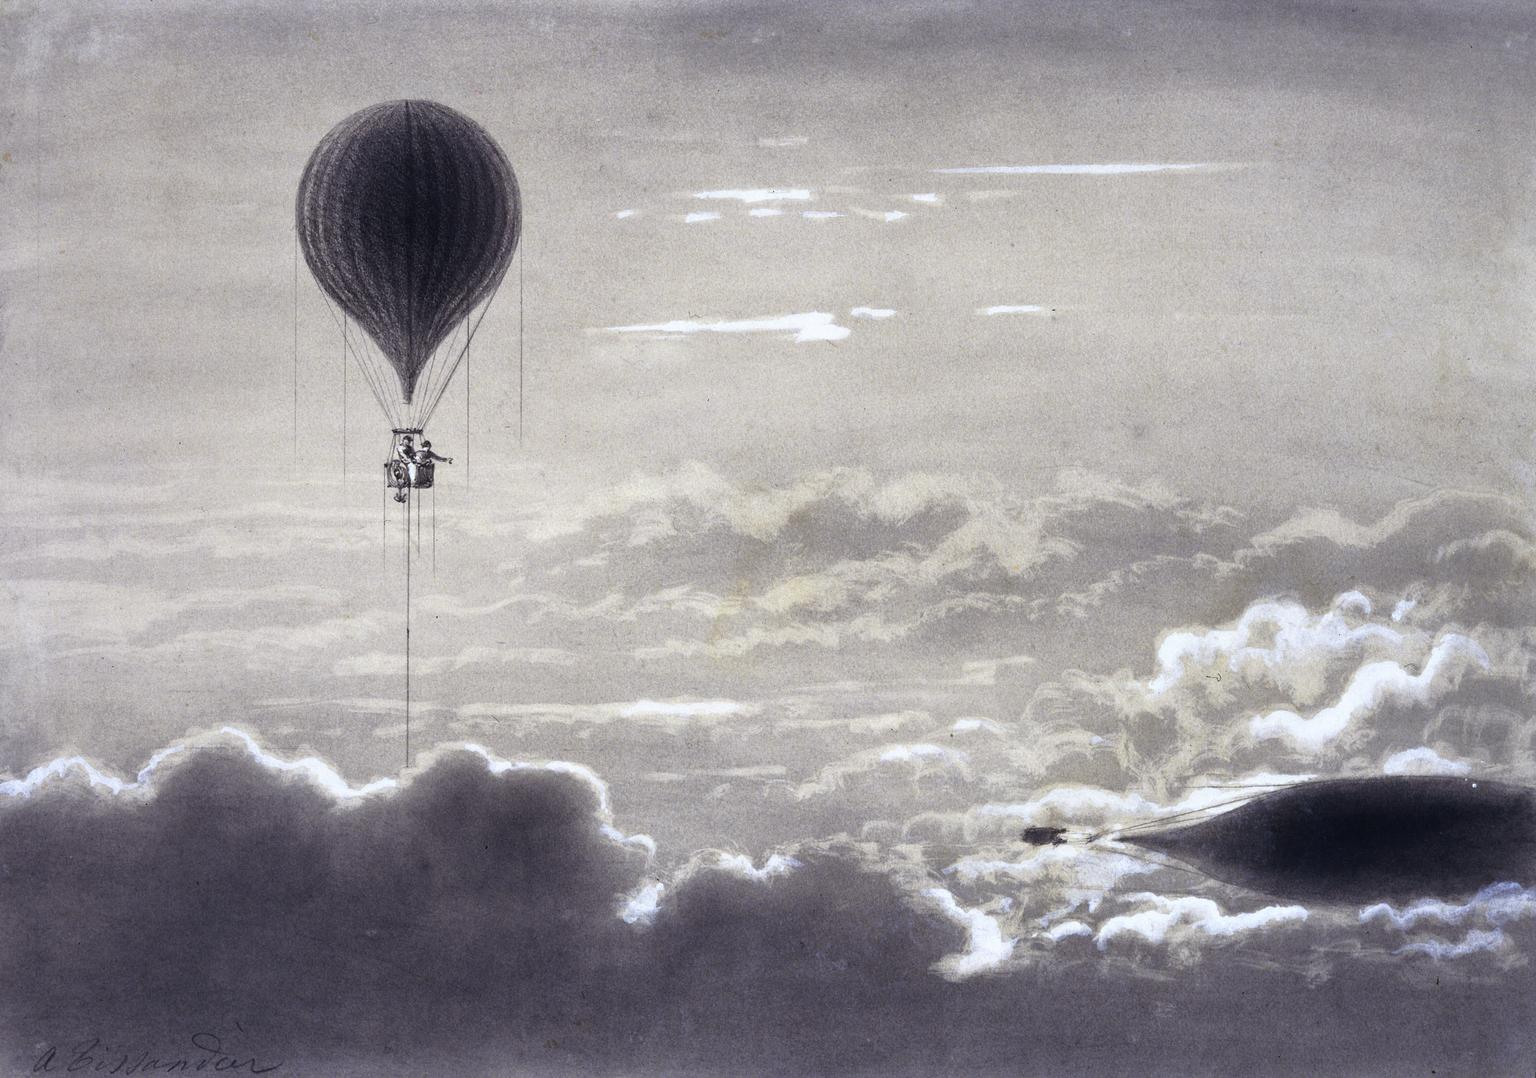 scientific-balloon-of-james-glaisher-1862-georges-naudet-collection-creative-commons-1